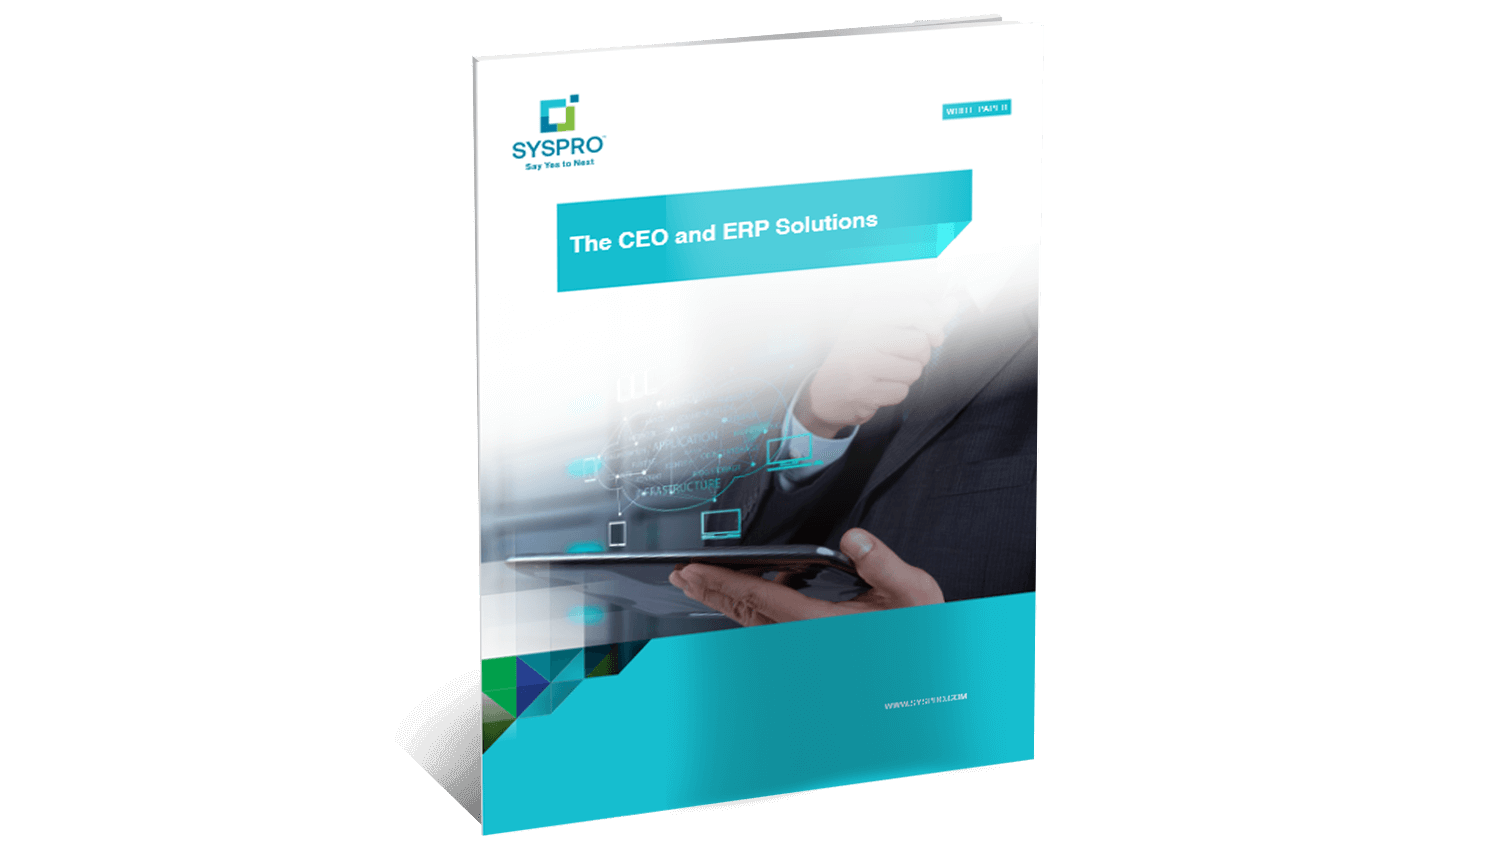 SYSPRO-ERP-software-system-the-ceo-and-erp-solutions-all-whitepaper